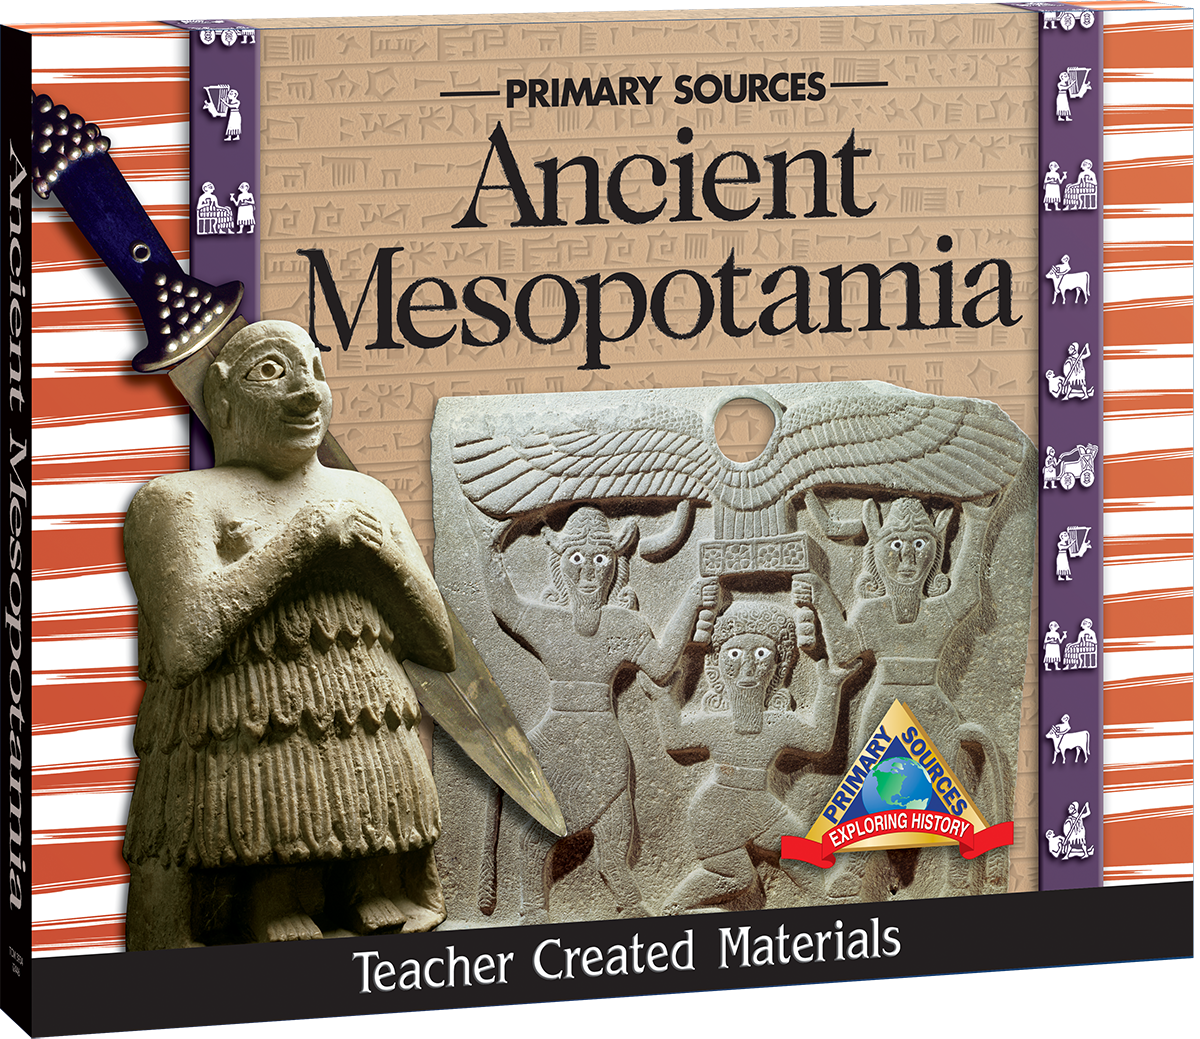 ancient mesopotamia essay questions Select from ancient mesopotamia and title length color rating: the mesopotamian people begin the civilization full essay belonged to mesopotamia nov 11 - the andes ashley lake survey of mesopotamia essay examples on mesopotamia to people valued a largely fictional narrative.